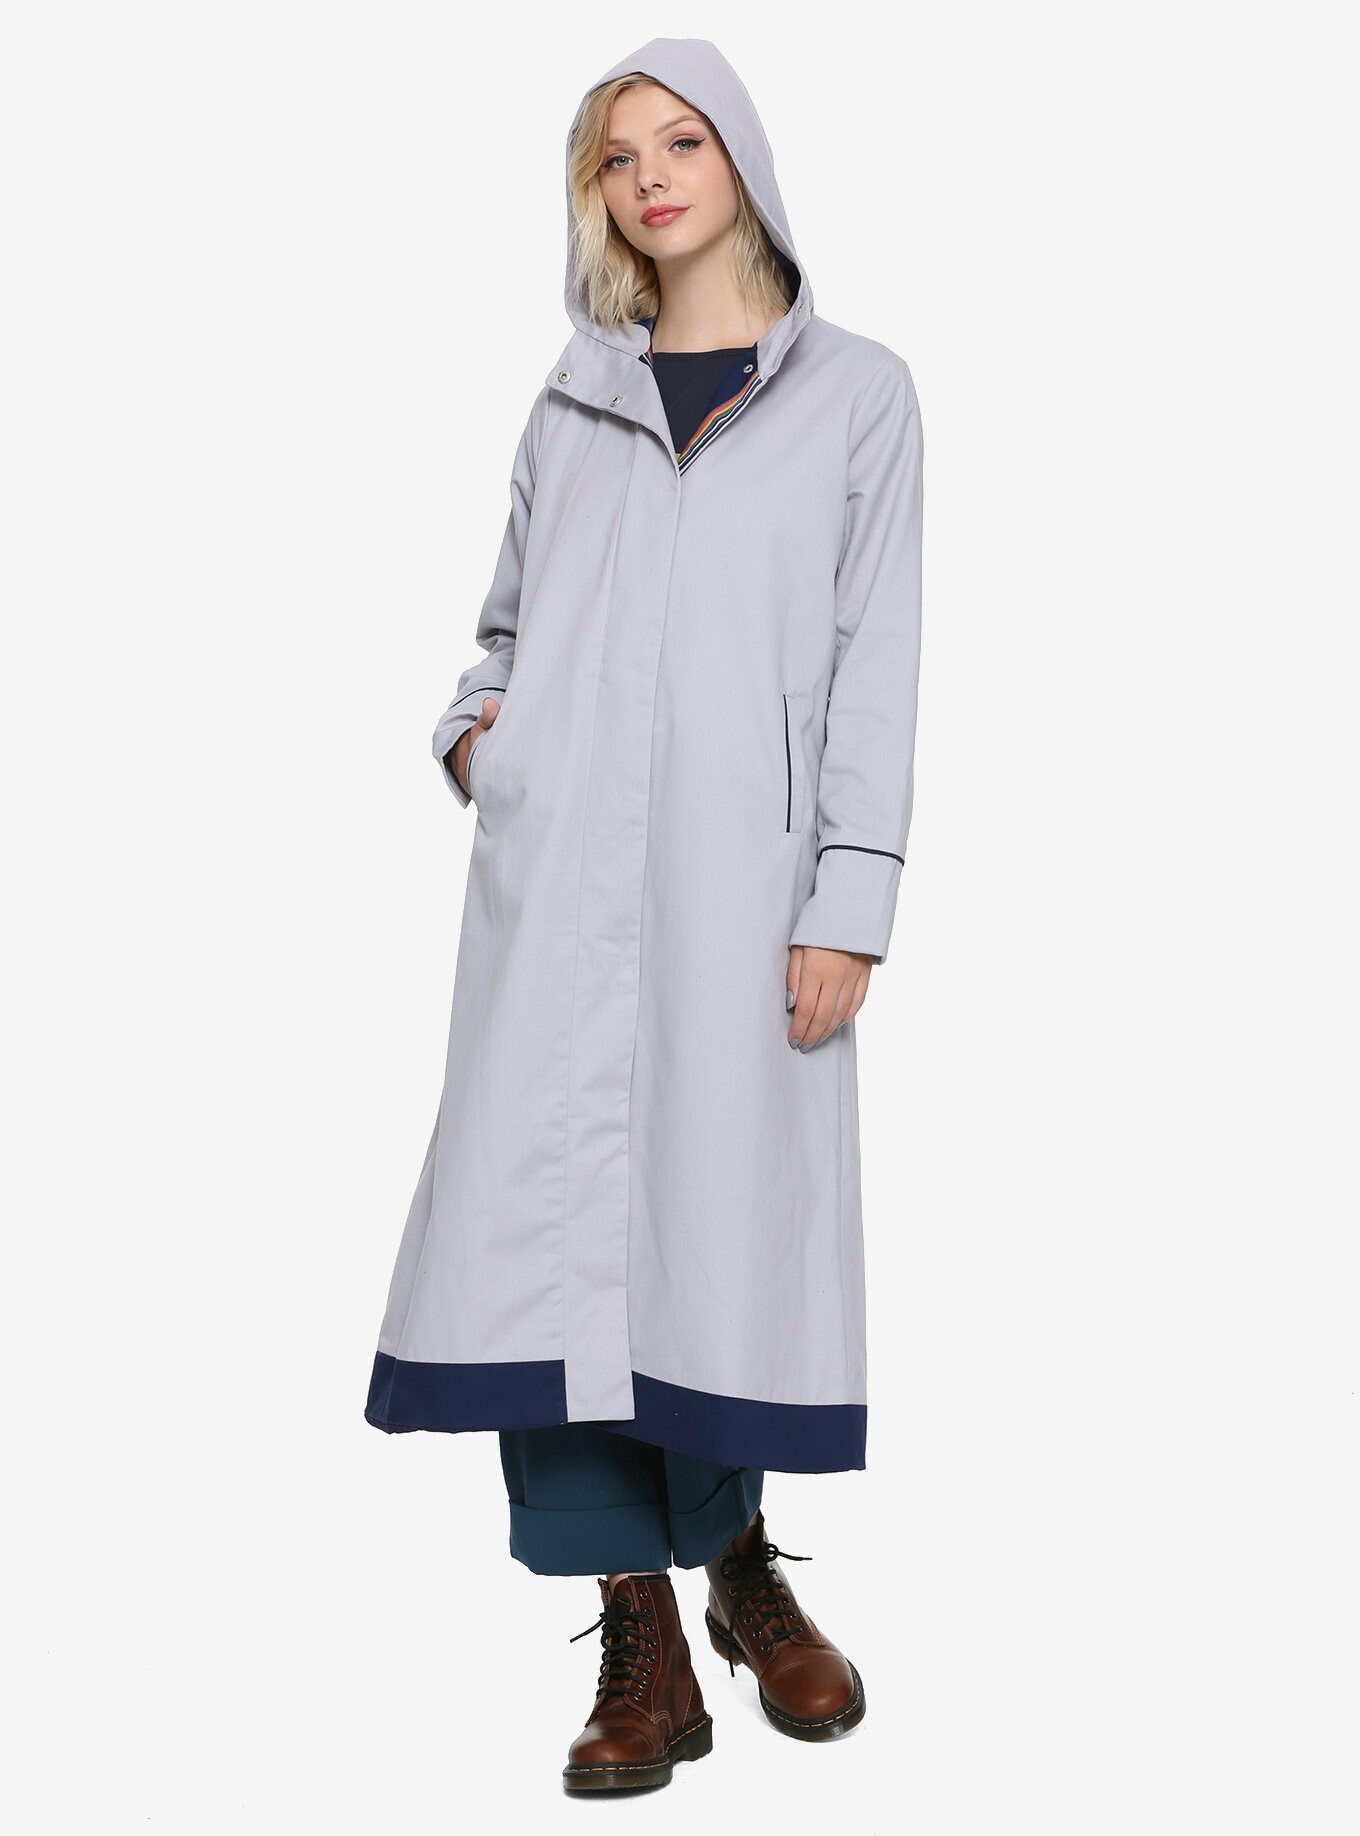 This Doctor Who trench coat is just in time for the 12th season premiere 21